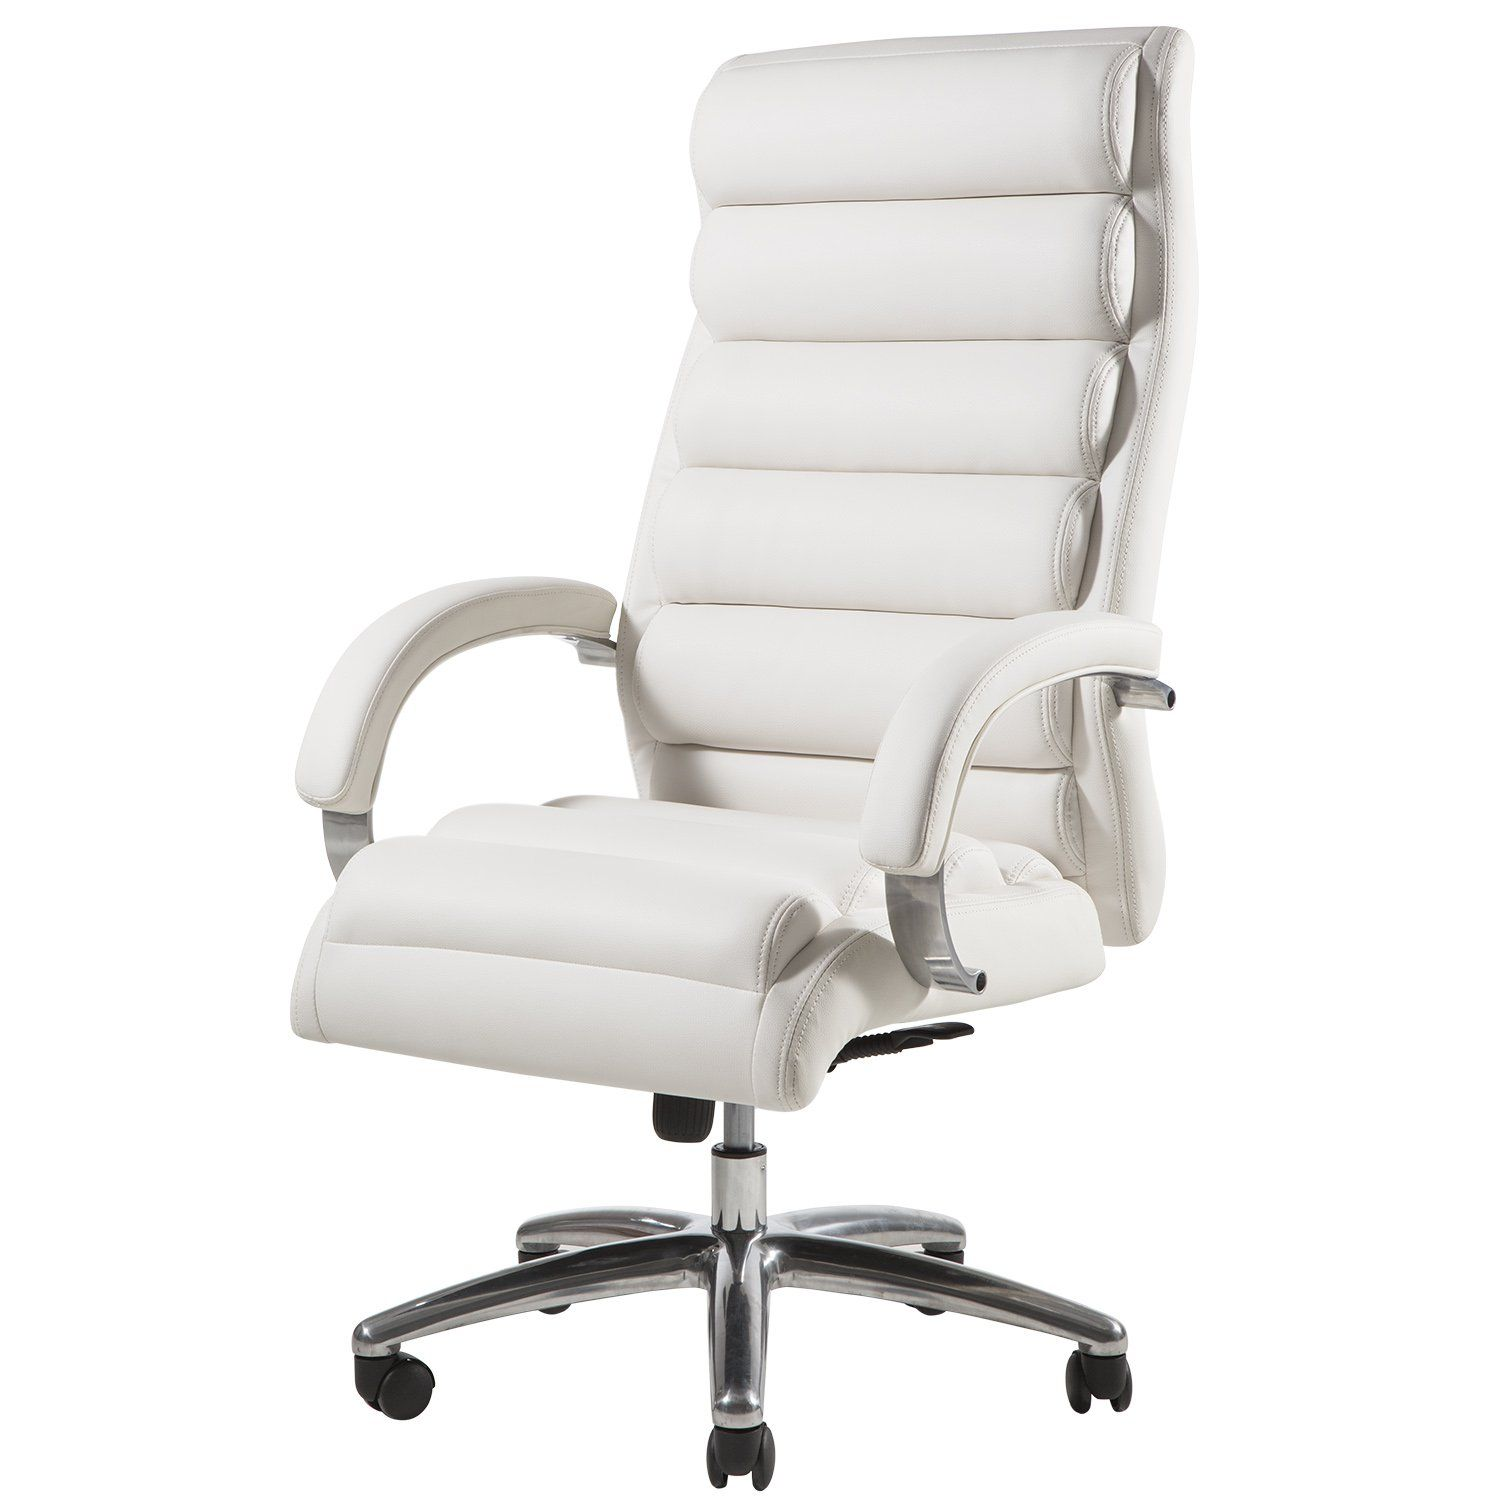 Topsky High Back Big And Tall 400 Lb Thick Padded Soft Seat And Back Executive Pu Pvc Leather Office Chair White Office Chair Leather Office Chair Office Chair Office chairs for big and tall